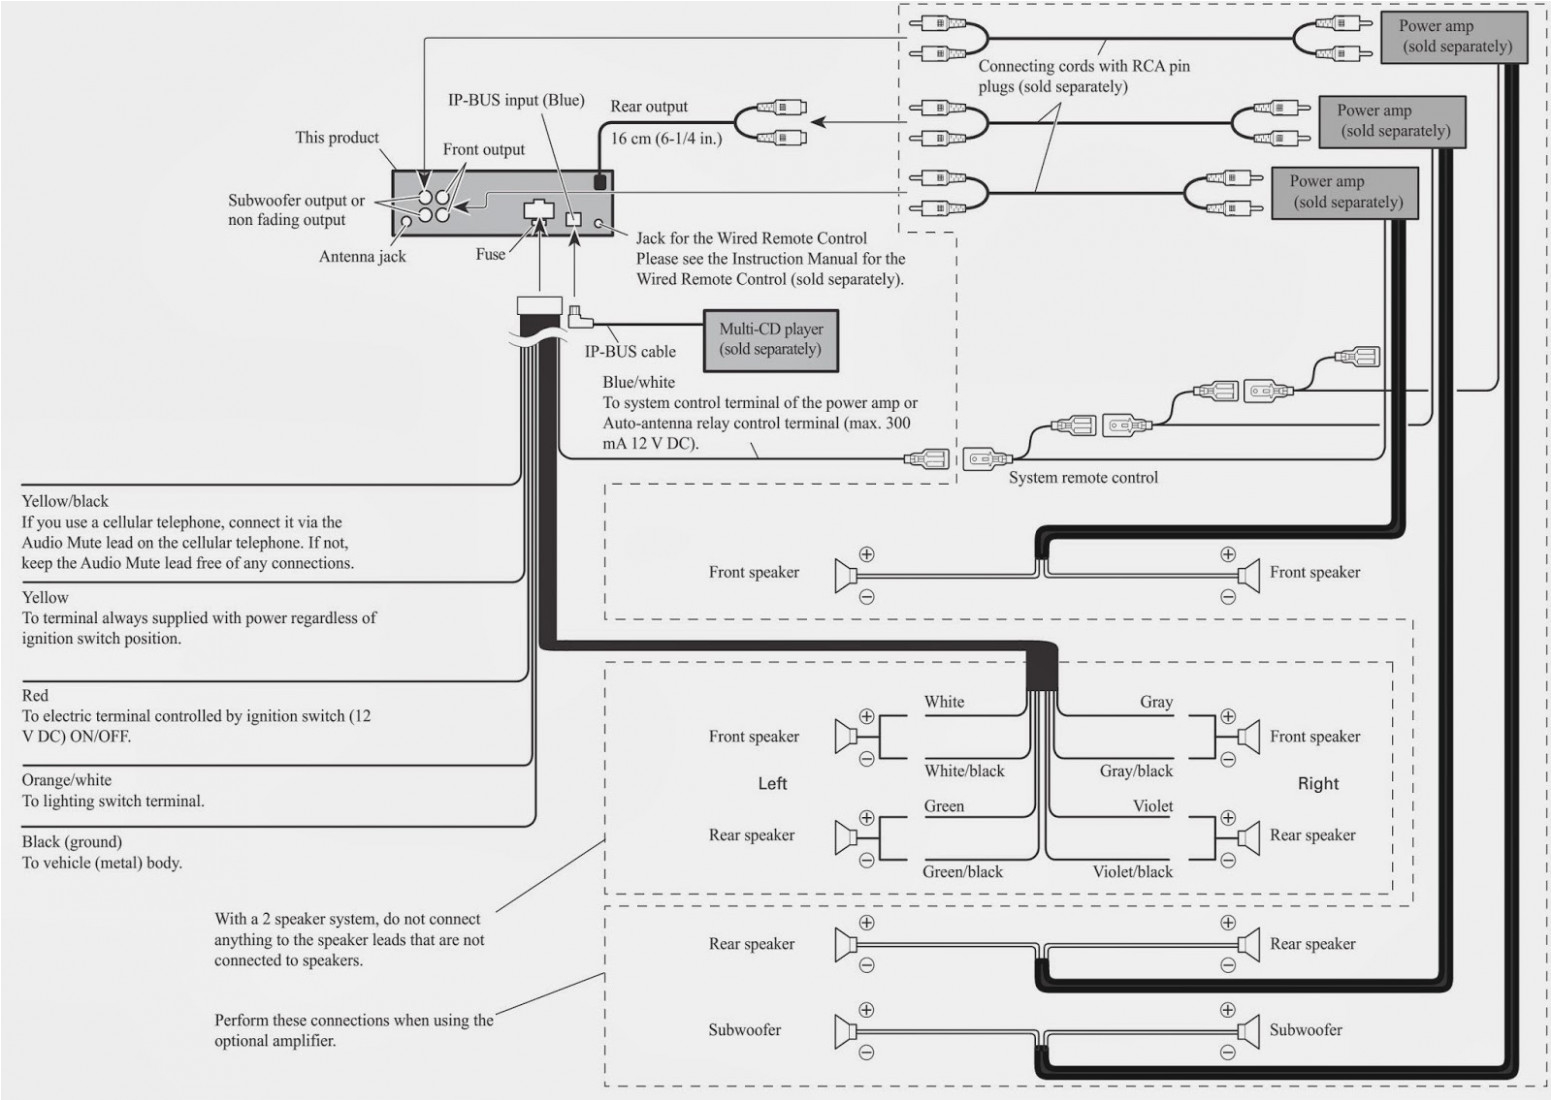 deh 1600 wiring diagram my wiring diagram pioneer car stereo wiring harness deh 1600 source new 16 pin